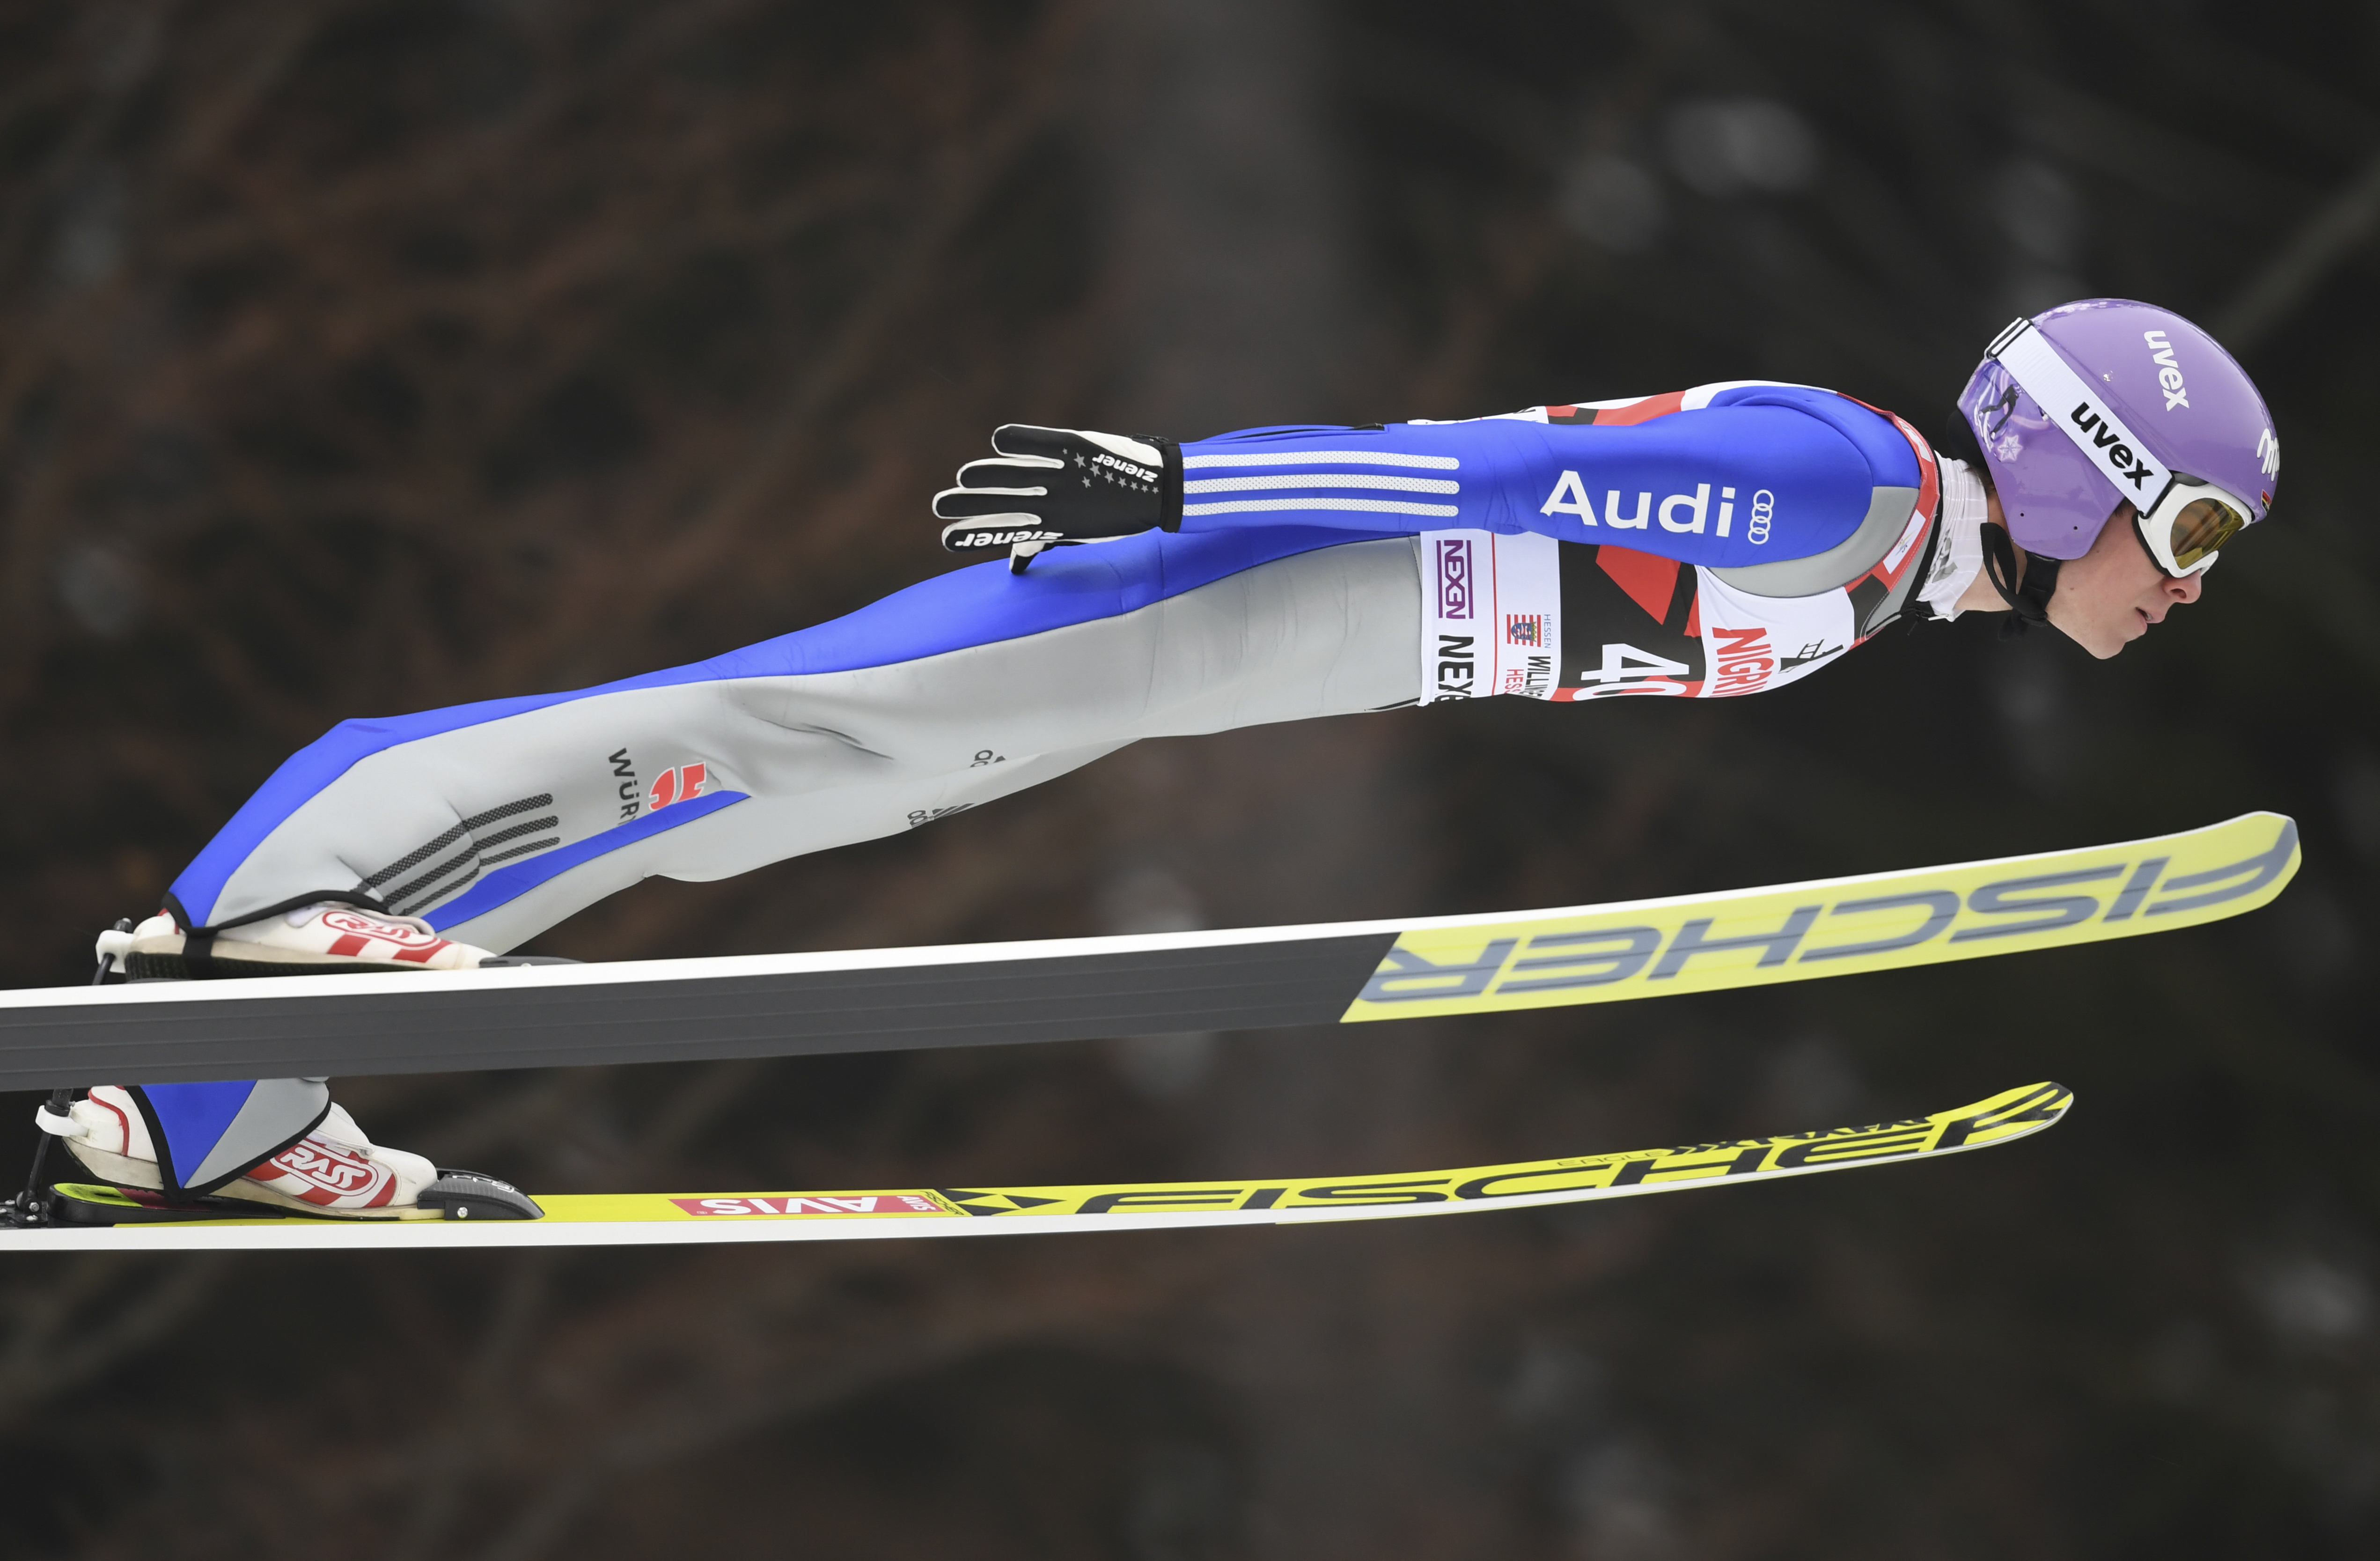 Andreas Wellinger from Germany soars through the air during a trial jump at the ski jumping World Cup in Willingen, Germany, Sunday, Jan. 29, 2017. (Arne Dedert/dpa via AP)